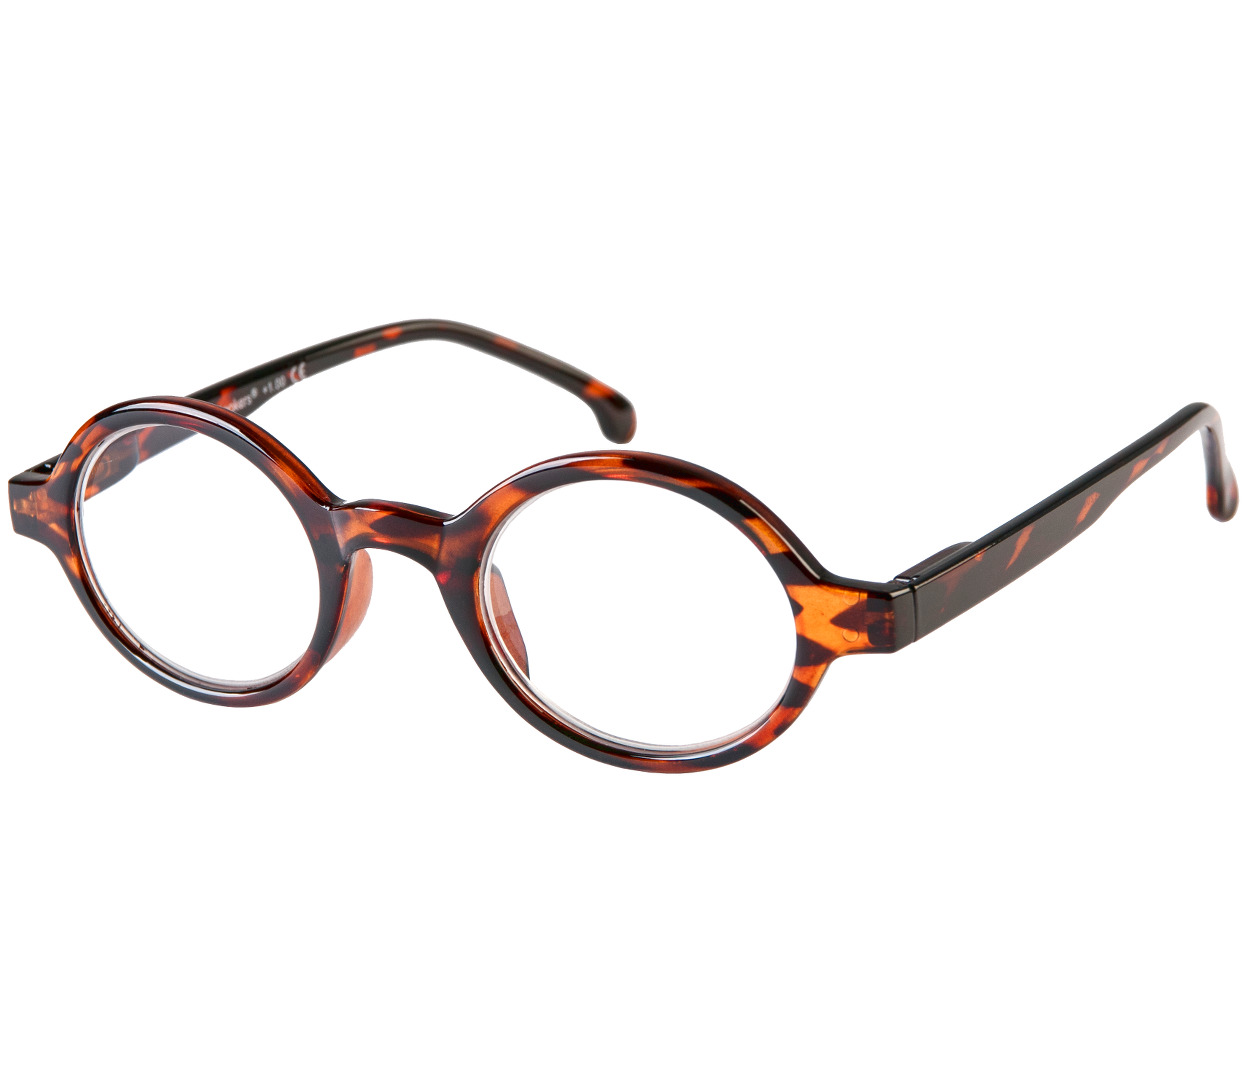 Kensington Glasses Frame : Kensington (Tortoiseshell) Reading Glasses - Tiger Specs